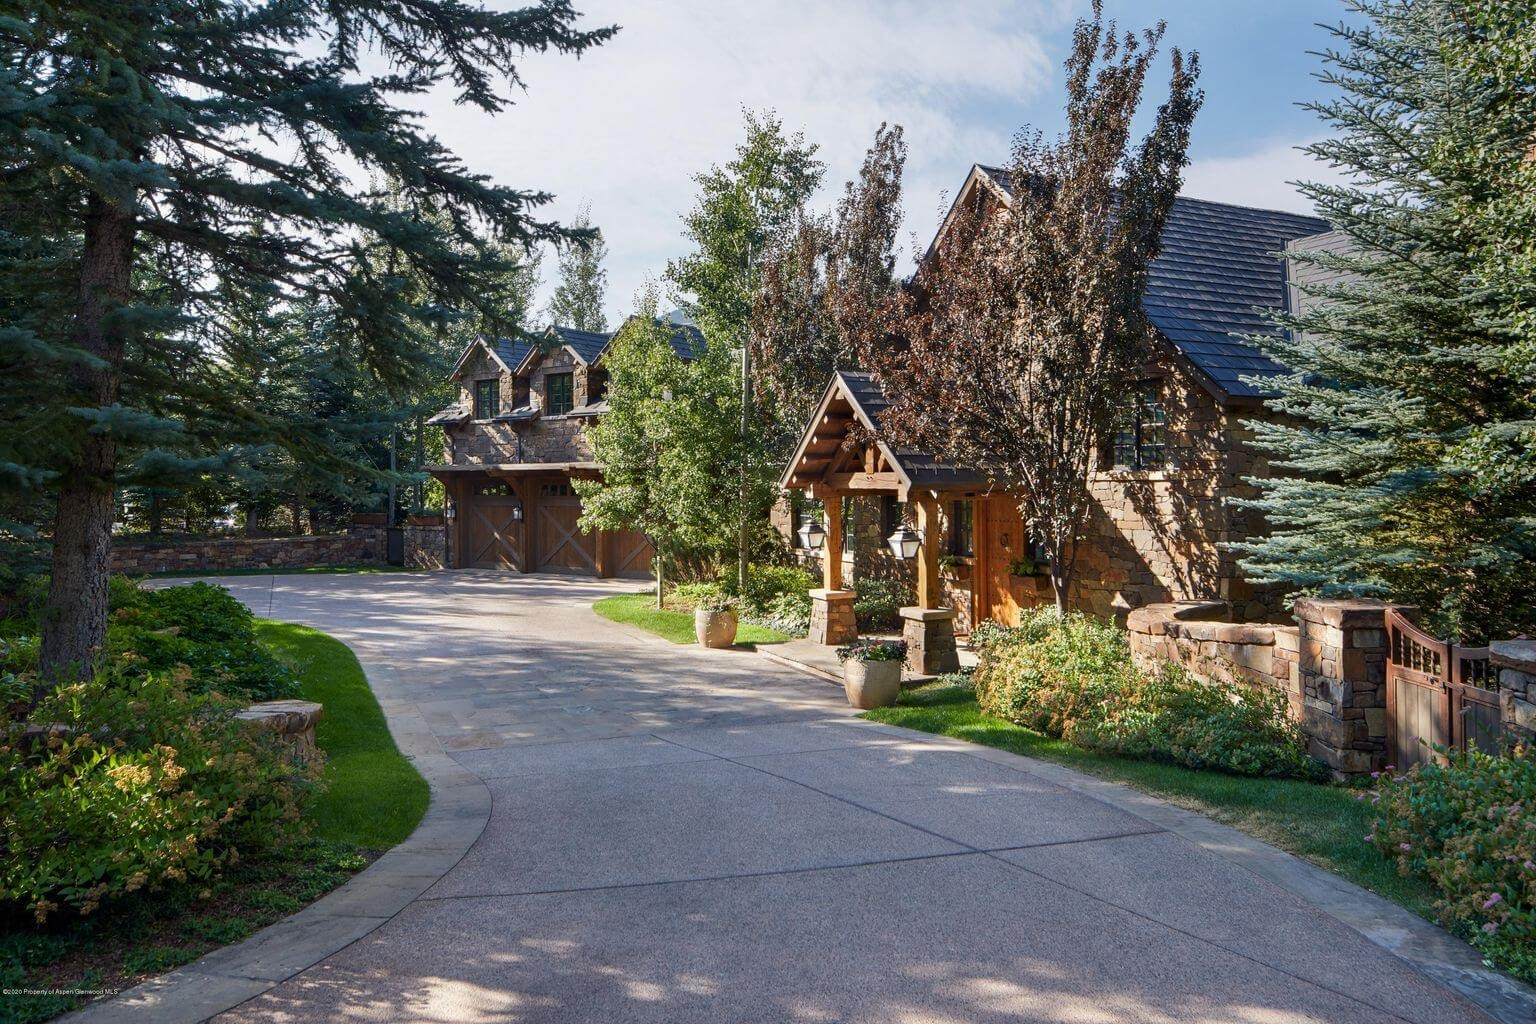 Quick Exit on Red Mountain: 288 Willoughby Way Sells 2X in Less Than 6 Mos for $31M/$2,916 SF Part Furn Image